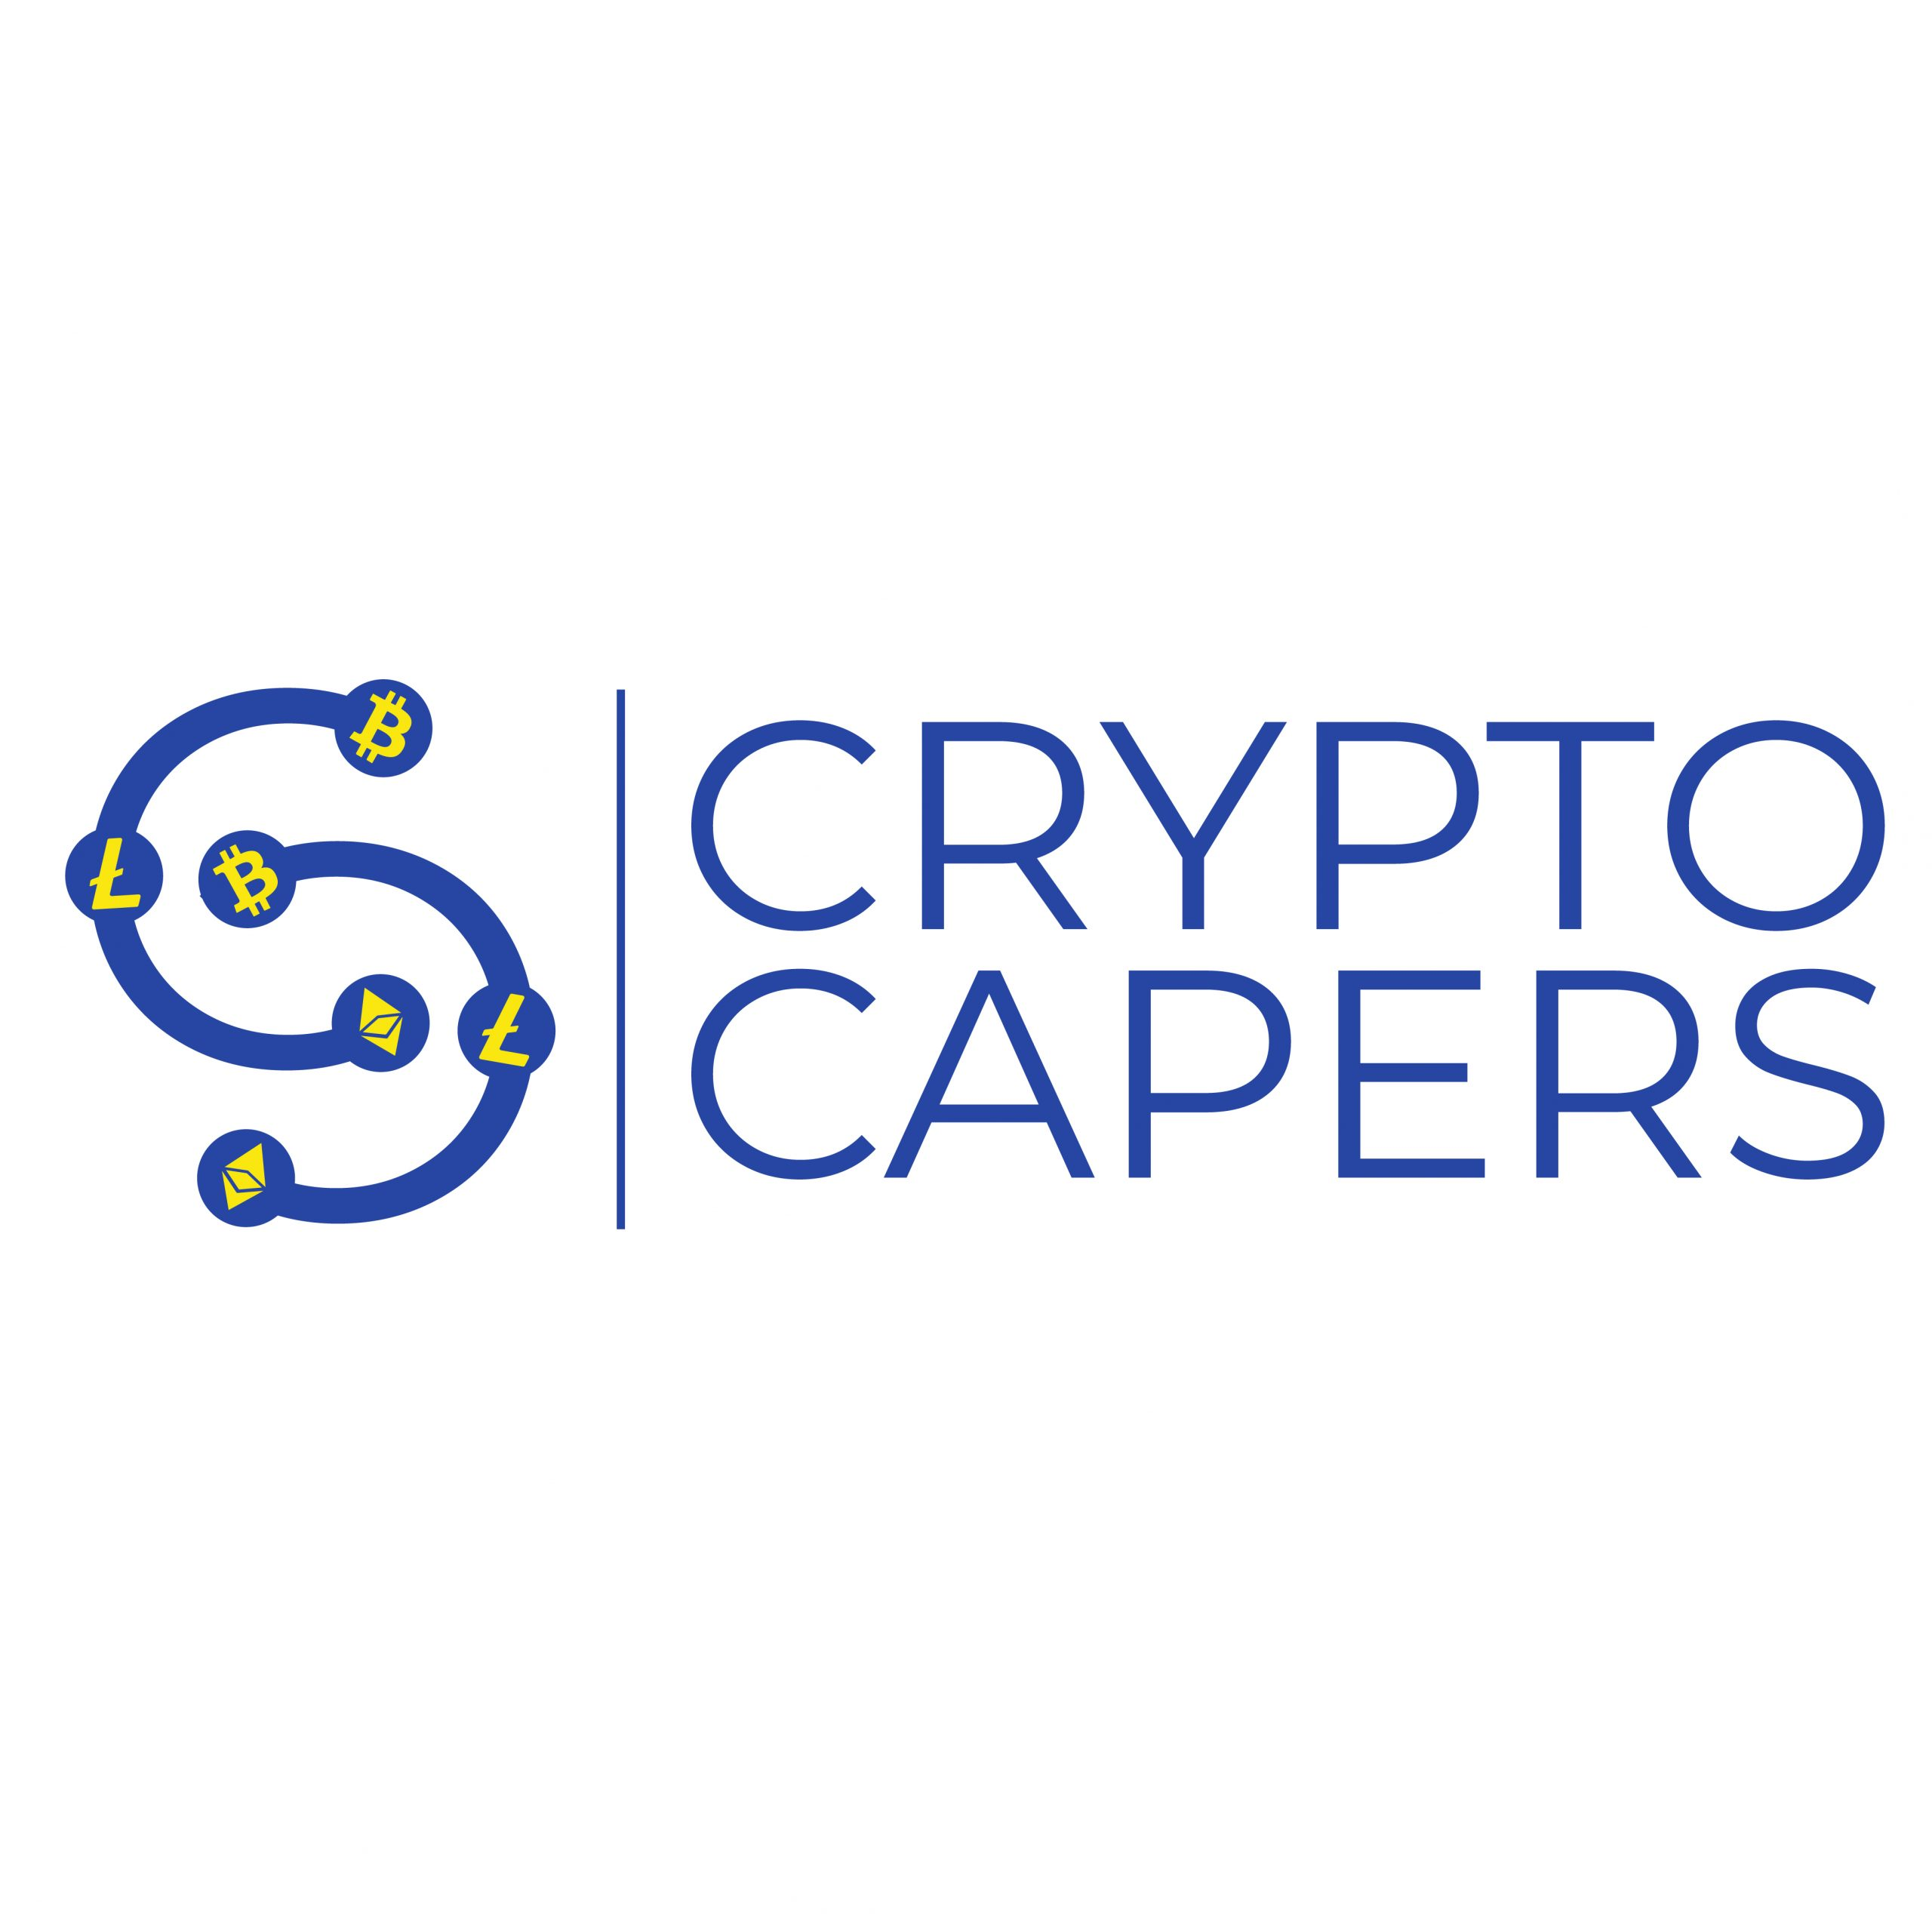 Crypto Capers